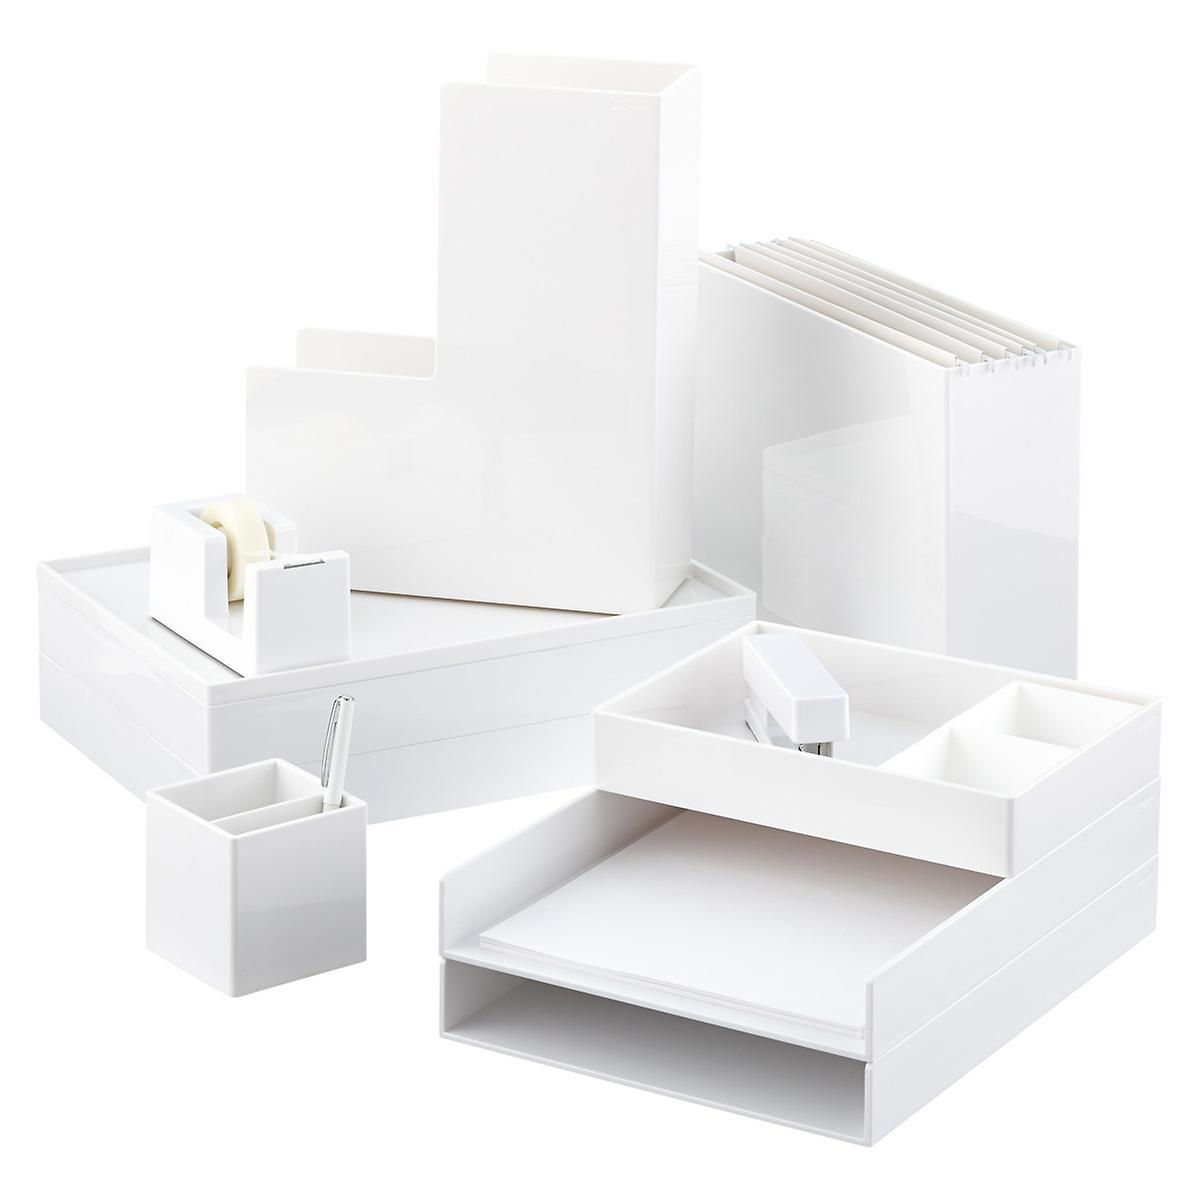 White Poppin Accessory Trays | Letter tray, Kitchen office and Trays